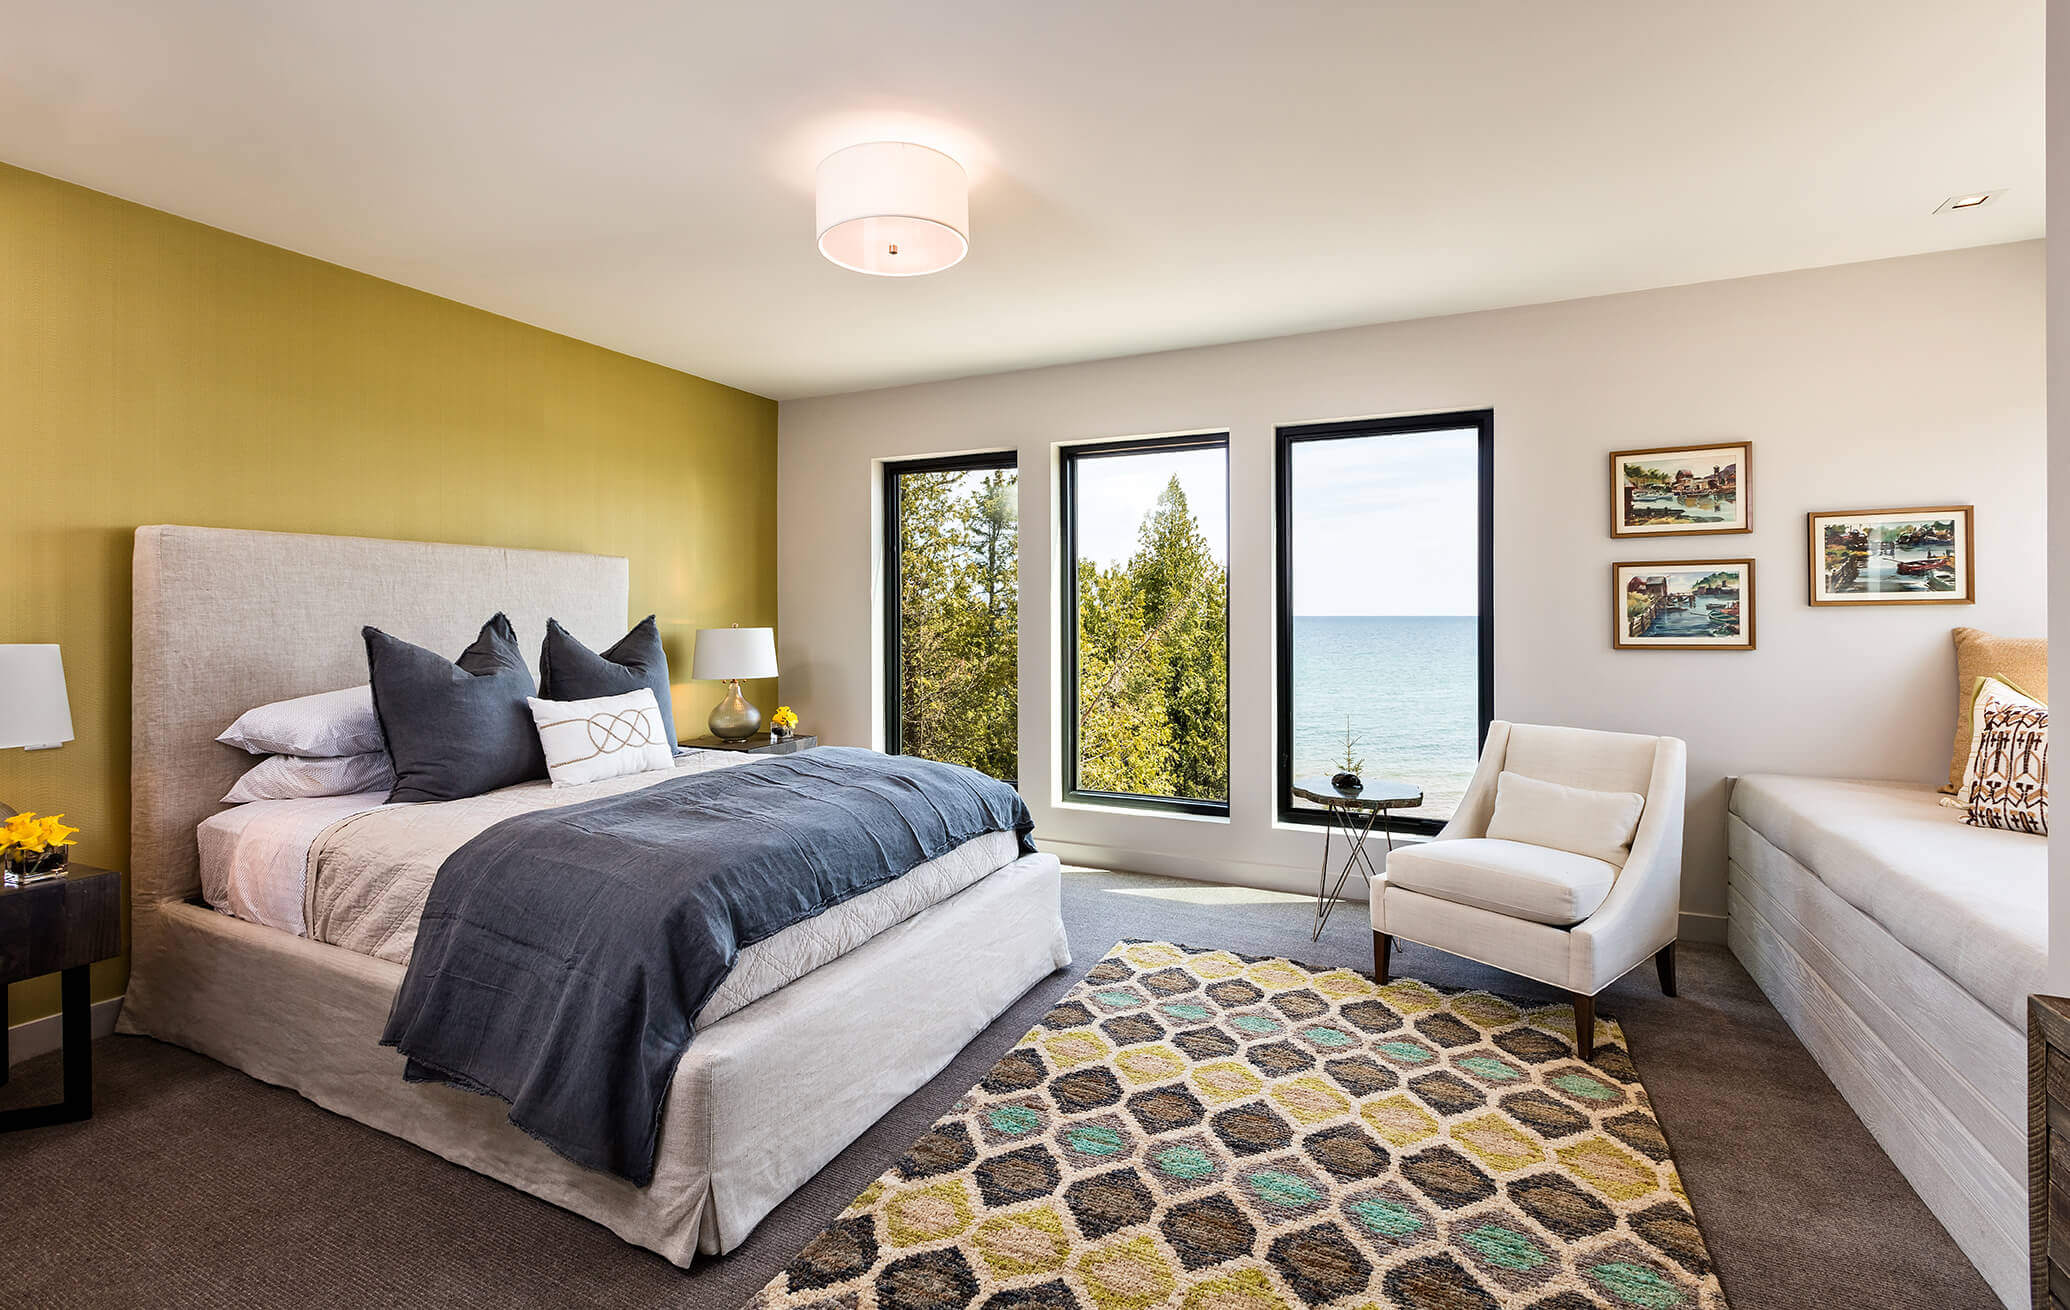 A bedroom featuring sleek window lines and a view of Lake Michigan.